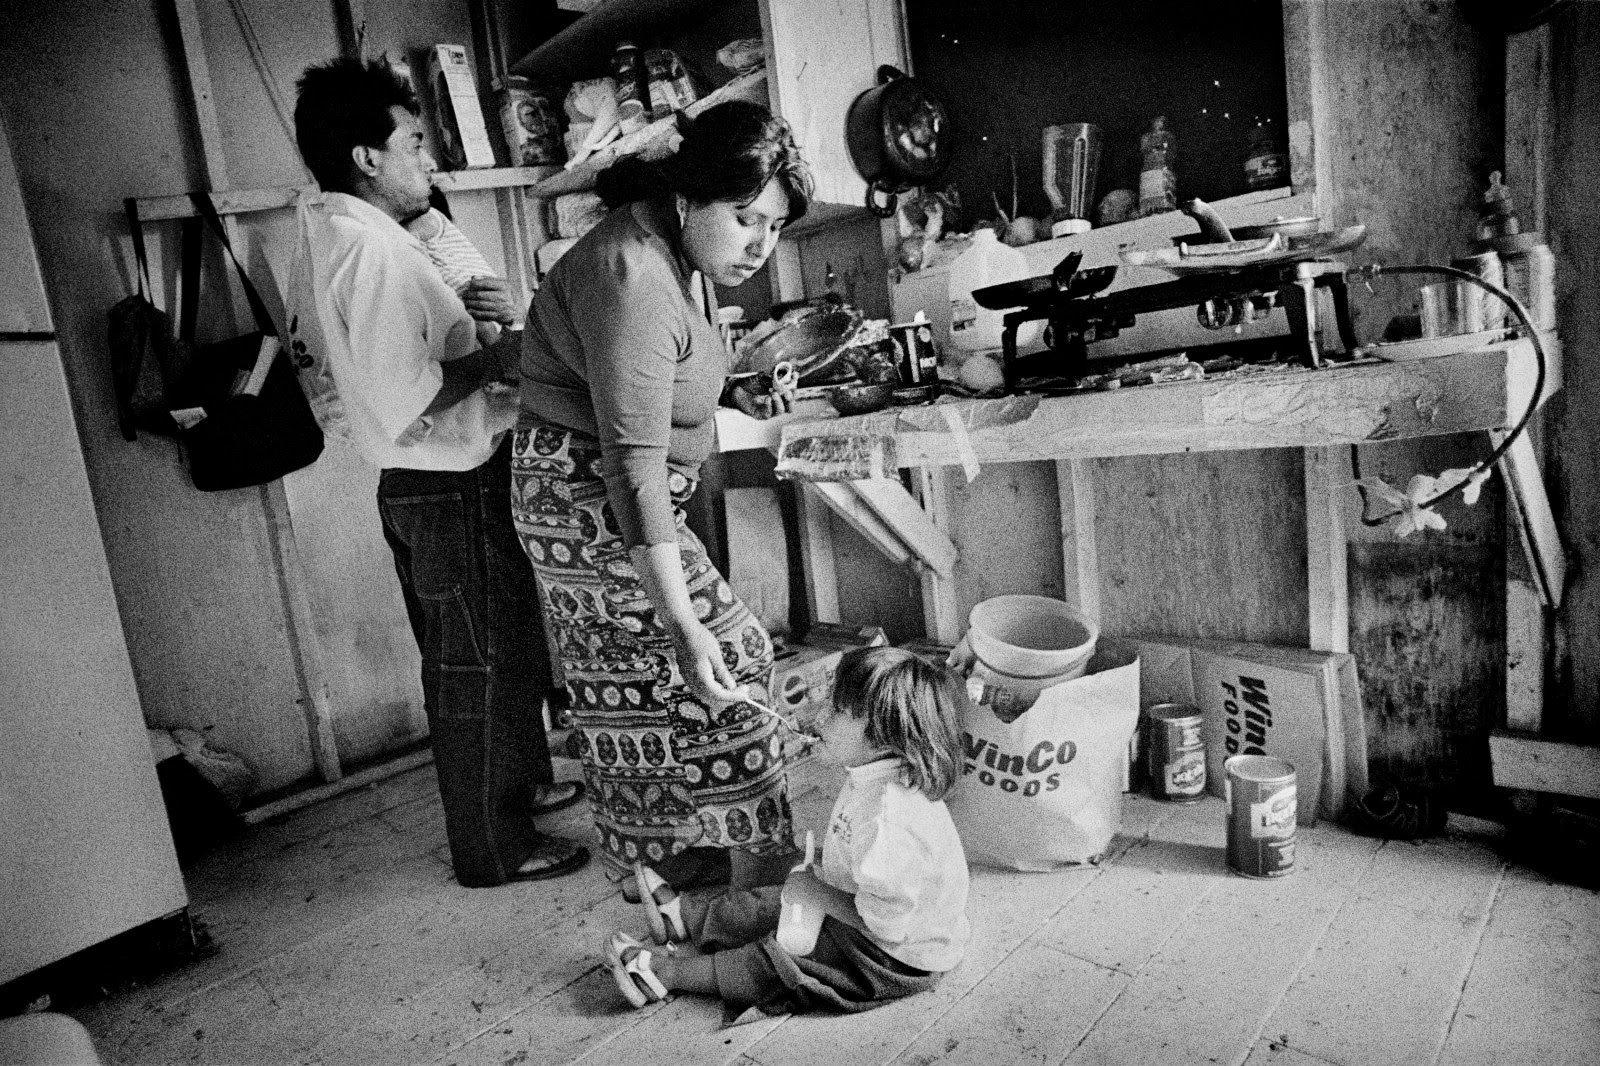 A Oaxacan immigrant mother feeds her daughter in a migrant worker's cabin. Hillsboro, Oregon.